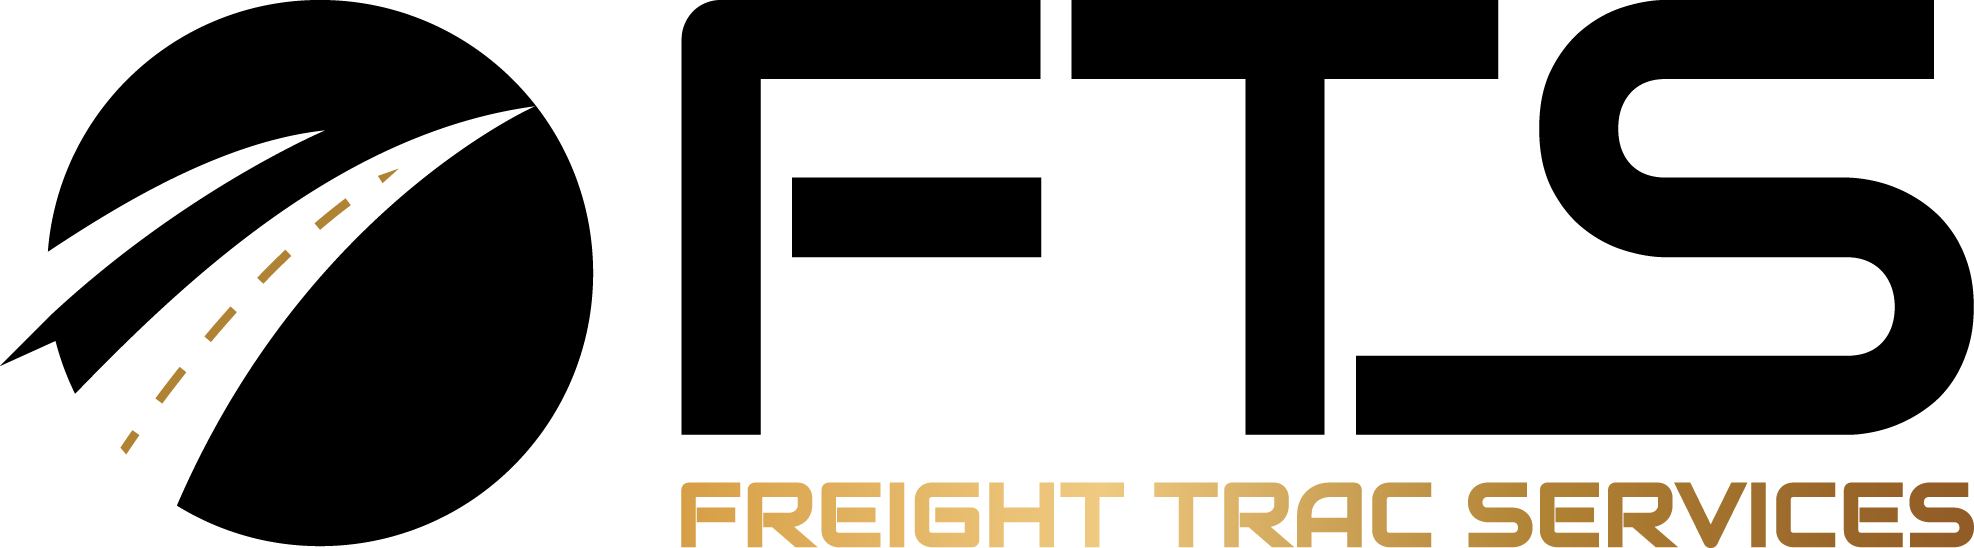 Freight Trac Services